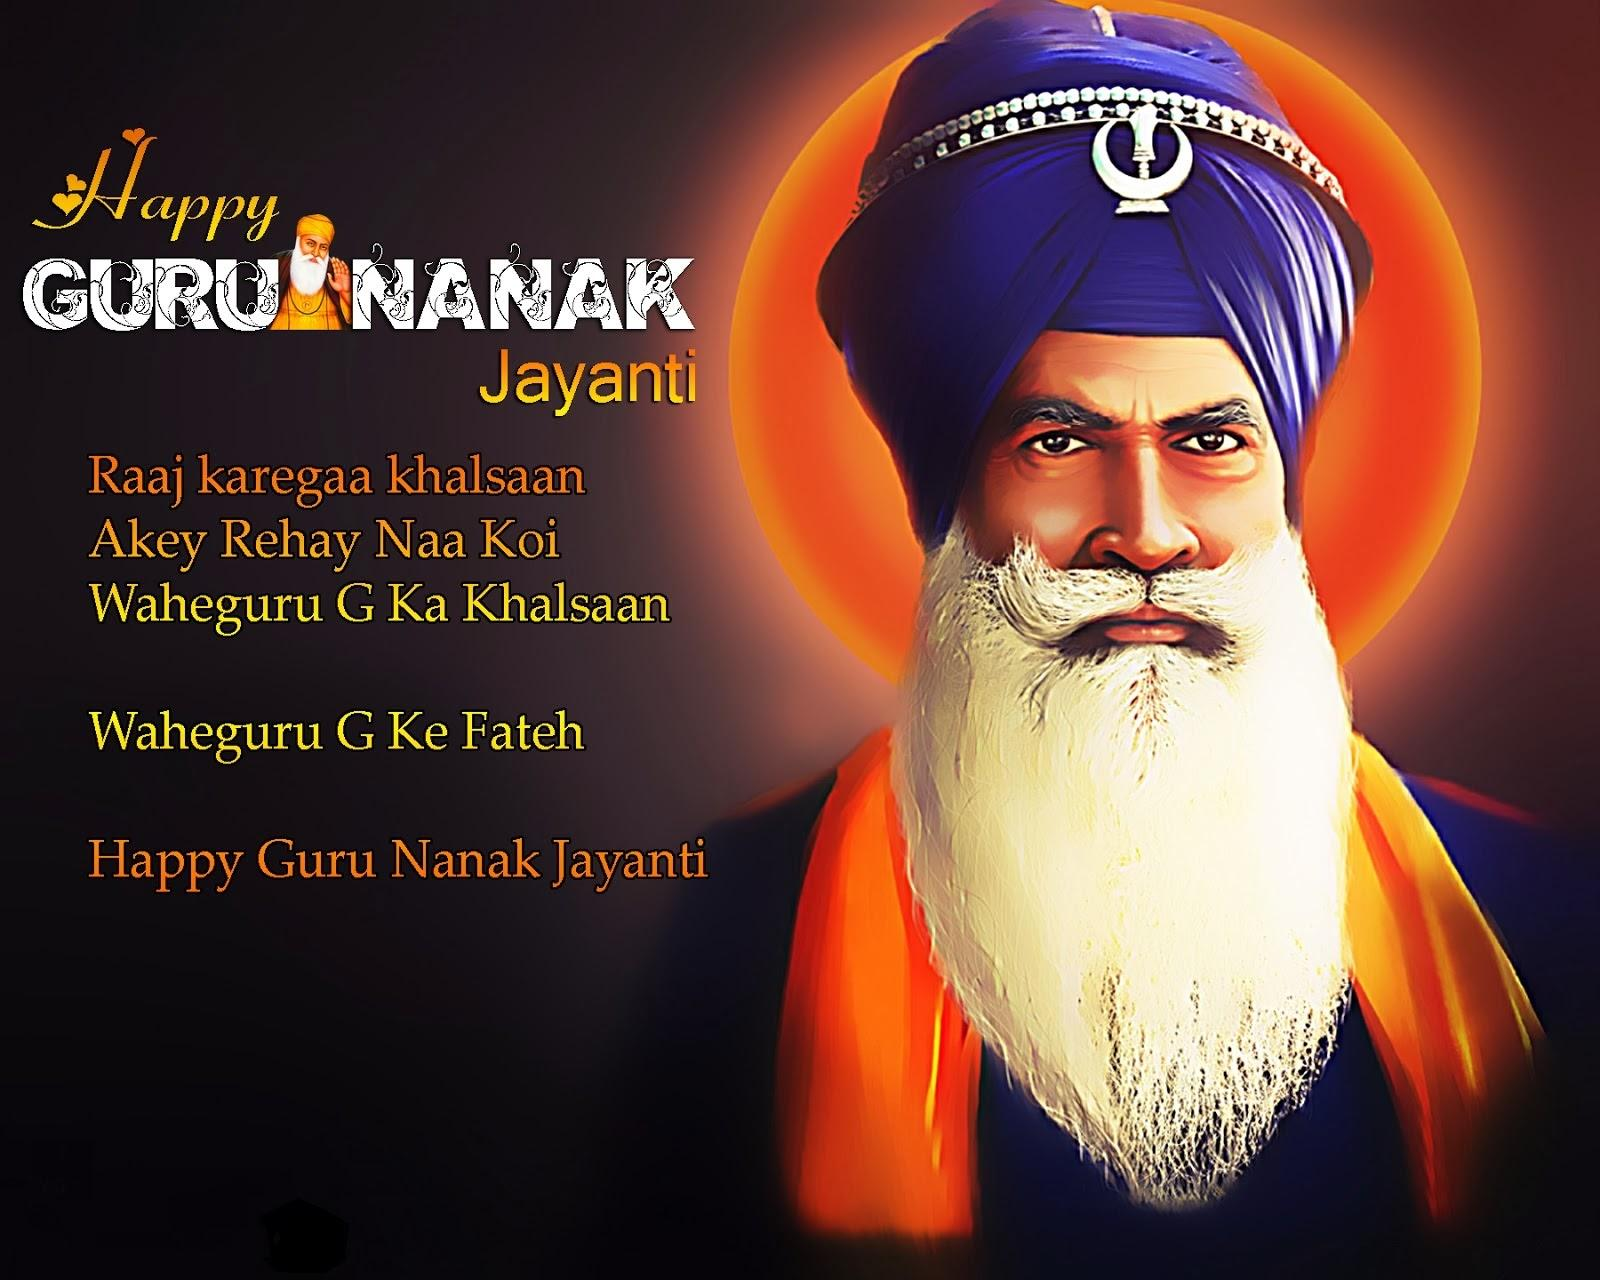 Happy Guru Nanak Jayanti (17th November 2013) HD Images and Pictures ...